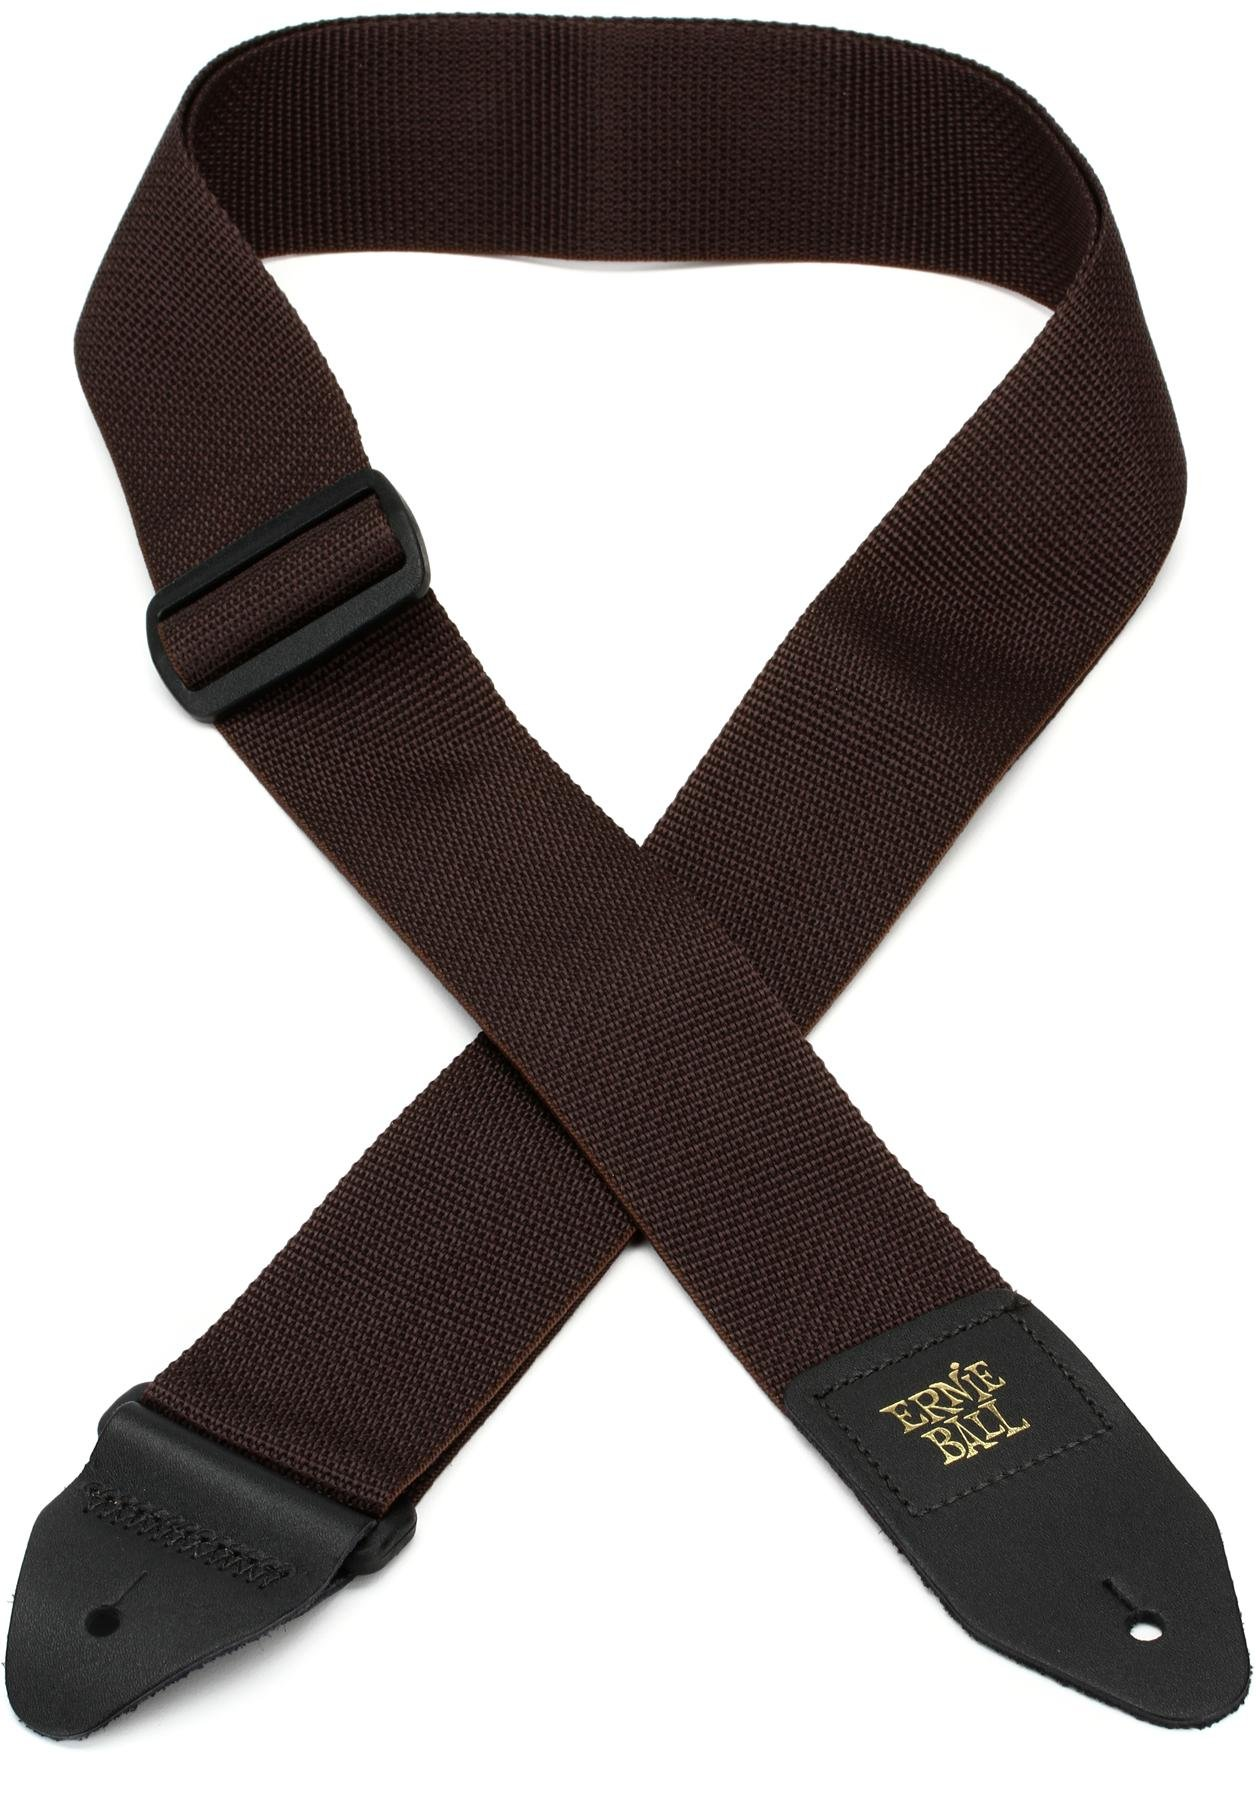 Ernie Ball Brown Polypro Guitar Guitar Strap